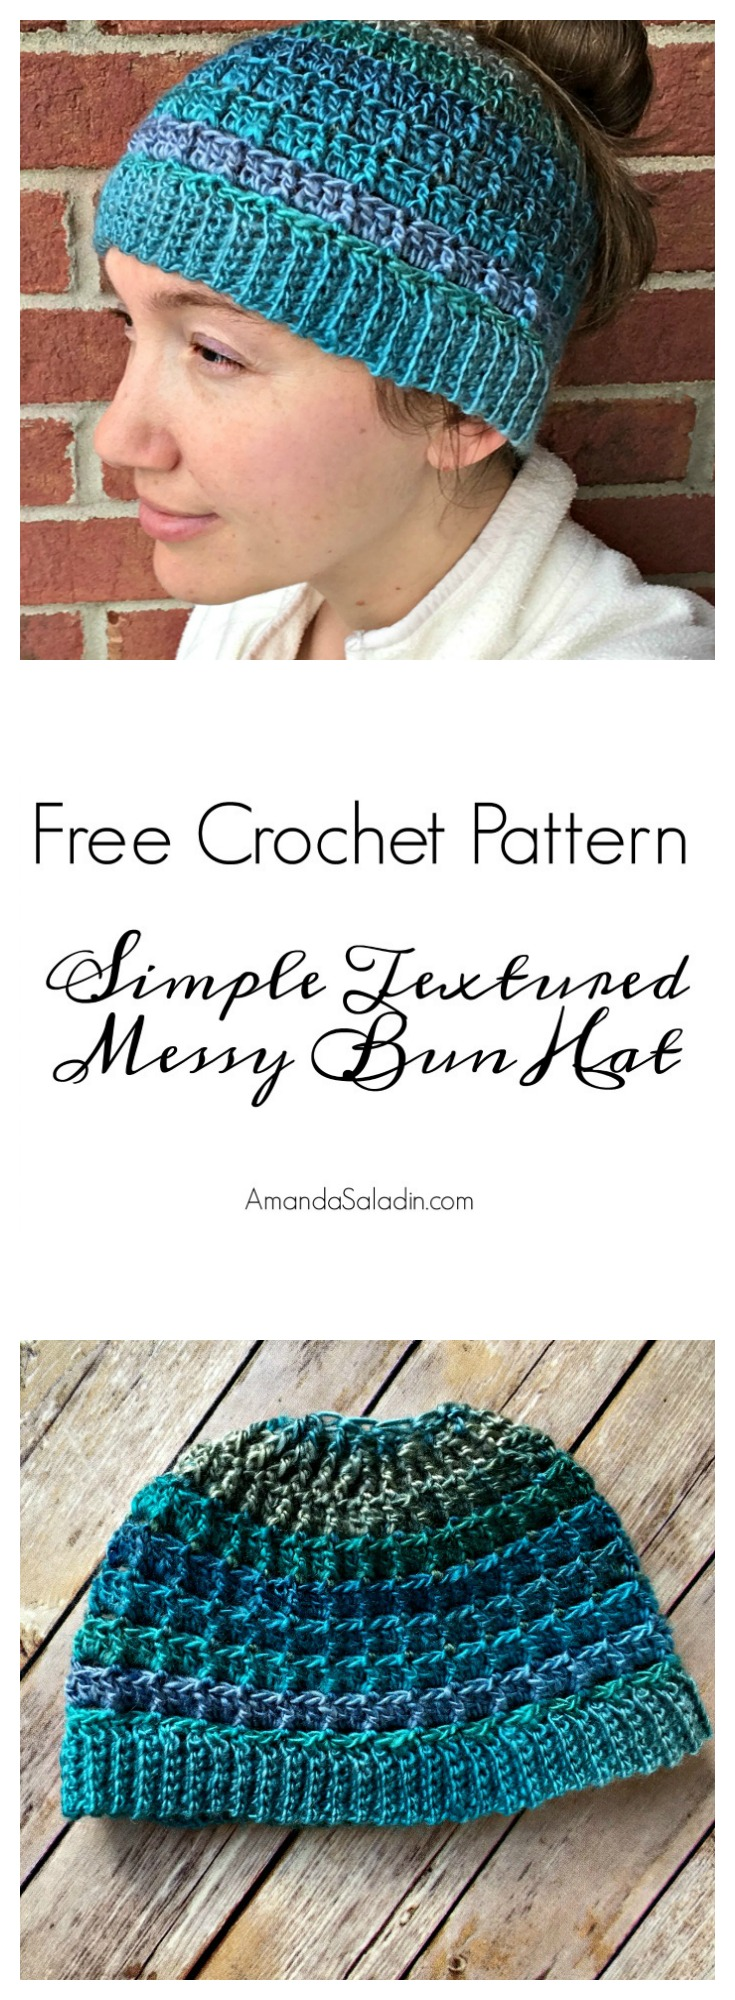 Free Crochet Pattern - Simple Textured Messy Bun Hat by Amanda Saladin